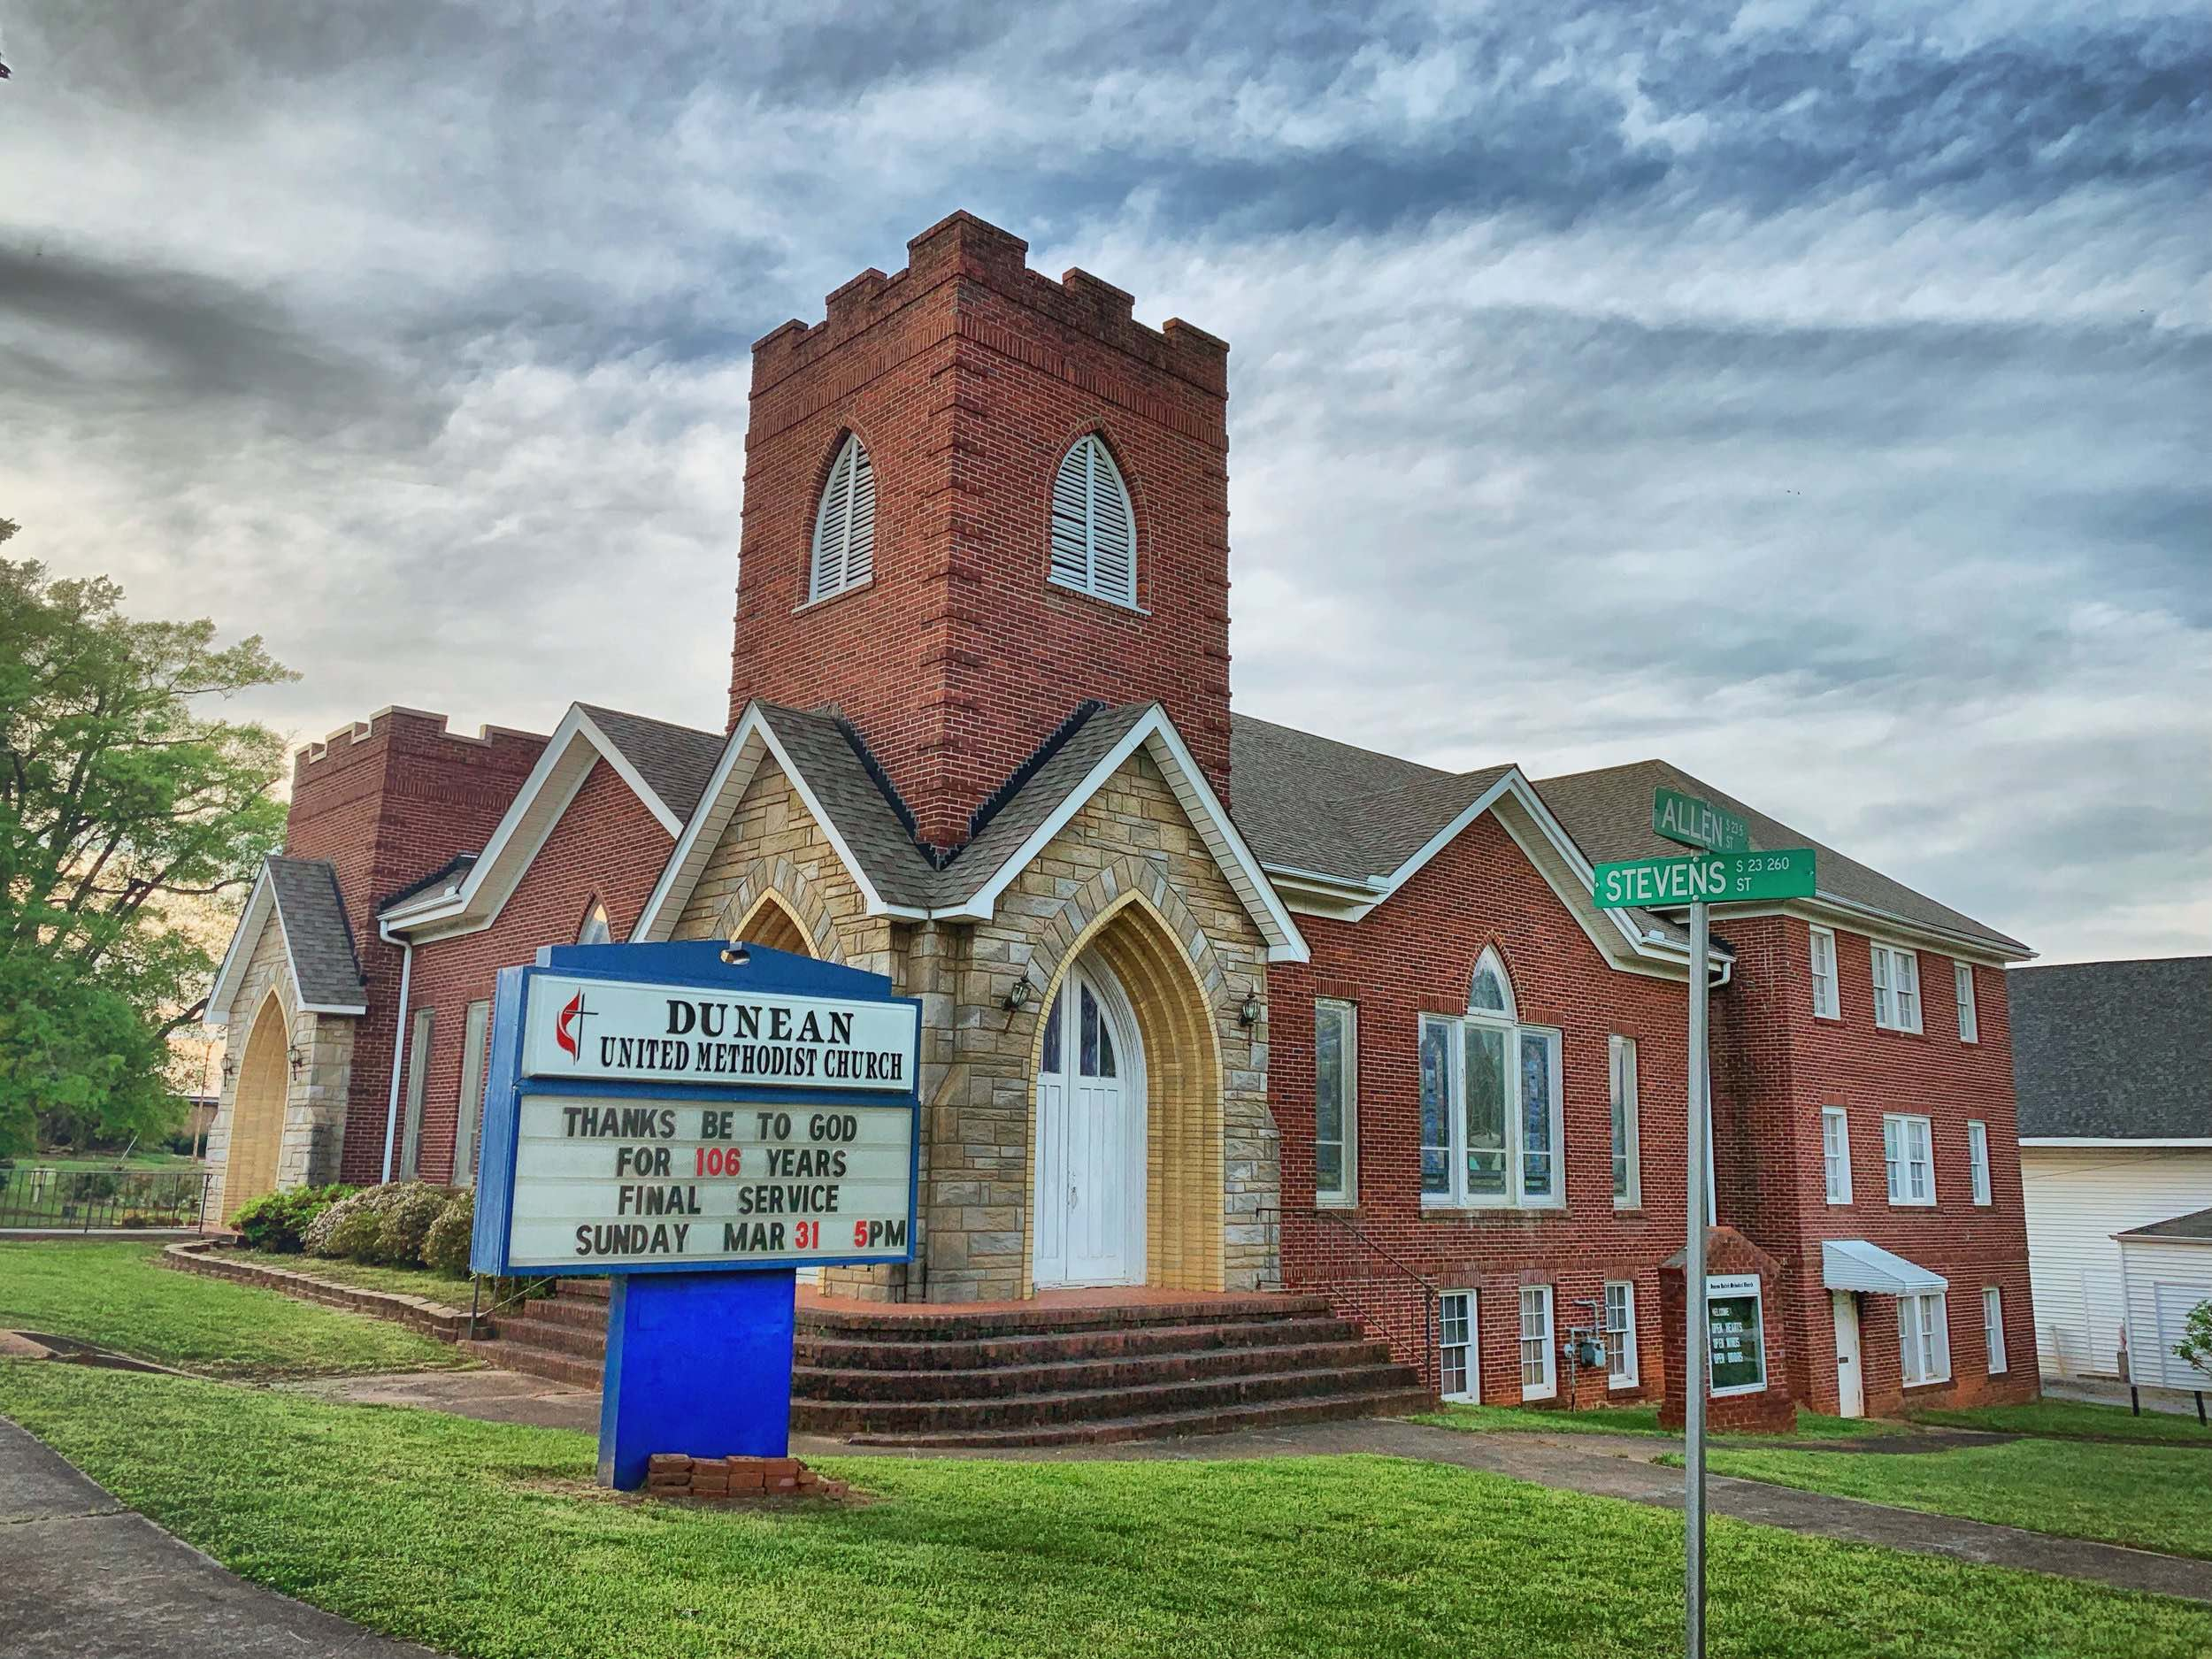 Leaf Institute is located in the historic building of Dunean United Methodist Church, built in 1919.